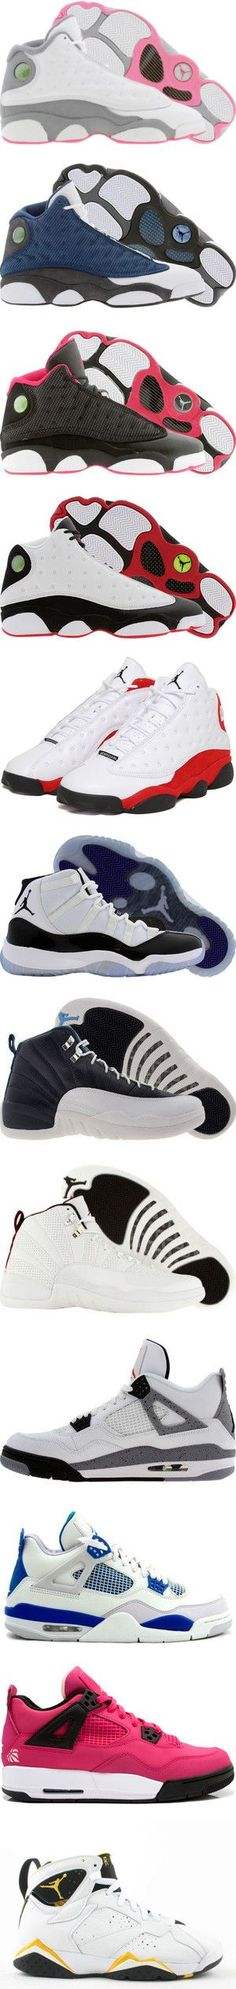 We are offering the cheapest jordans(Nike Griffey Shoes,Retro Air Jordan Shoes)with high quality!Buy it from our site,All Item Fast ShippingGREQTERT Nike Outfits, Jordan Outfits, Swag Outfits, Work Outfits, Adidas Cap, Cheap Jordans, Air Jordans, Cheap Nike, Retro Jordans